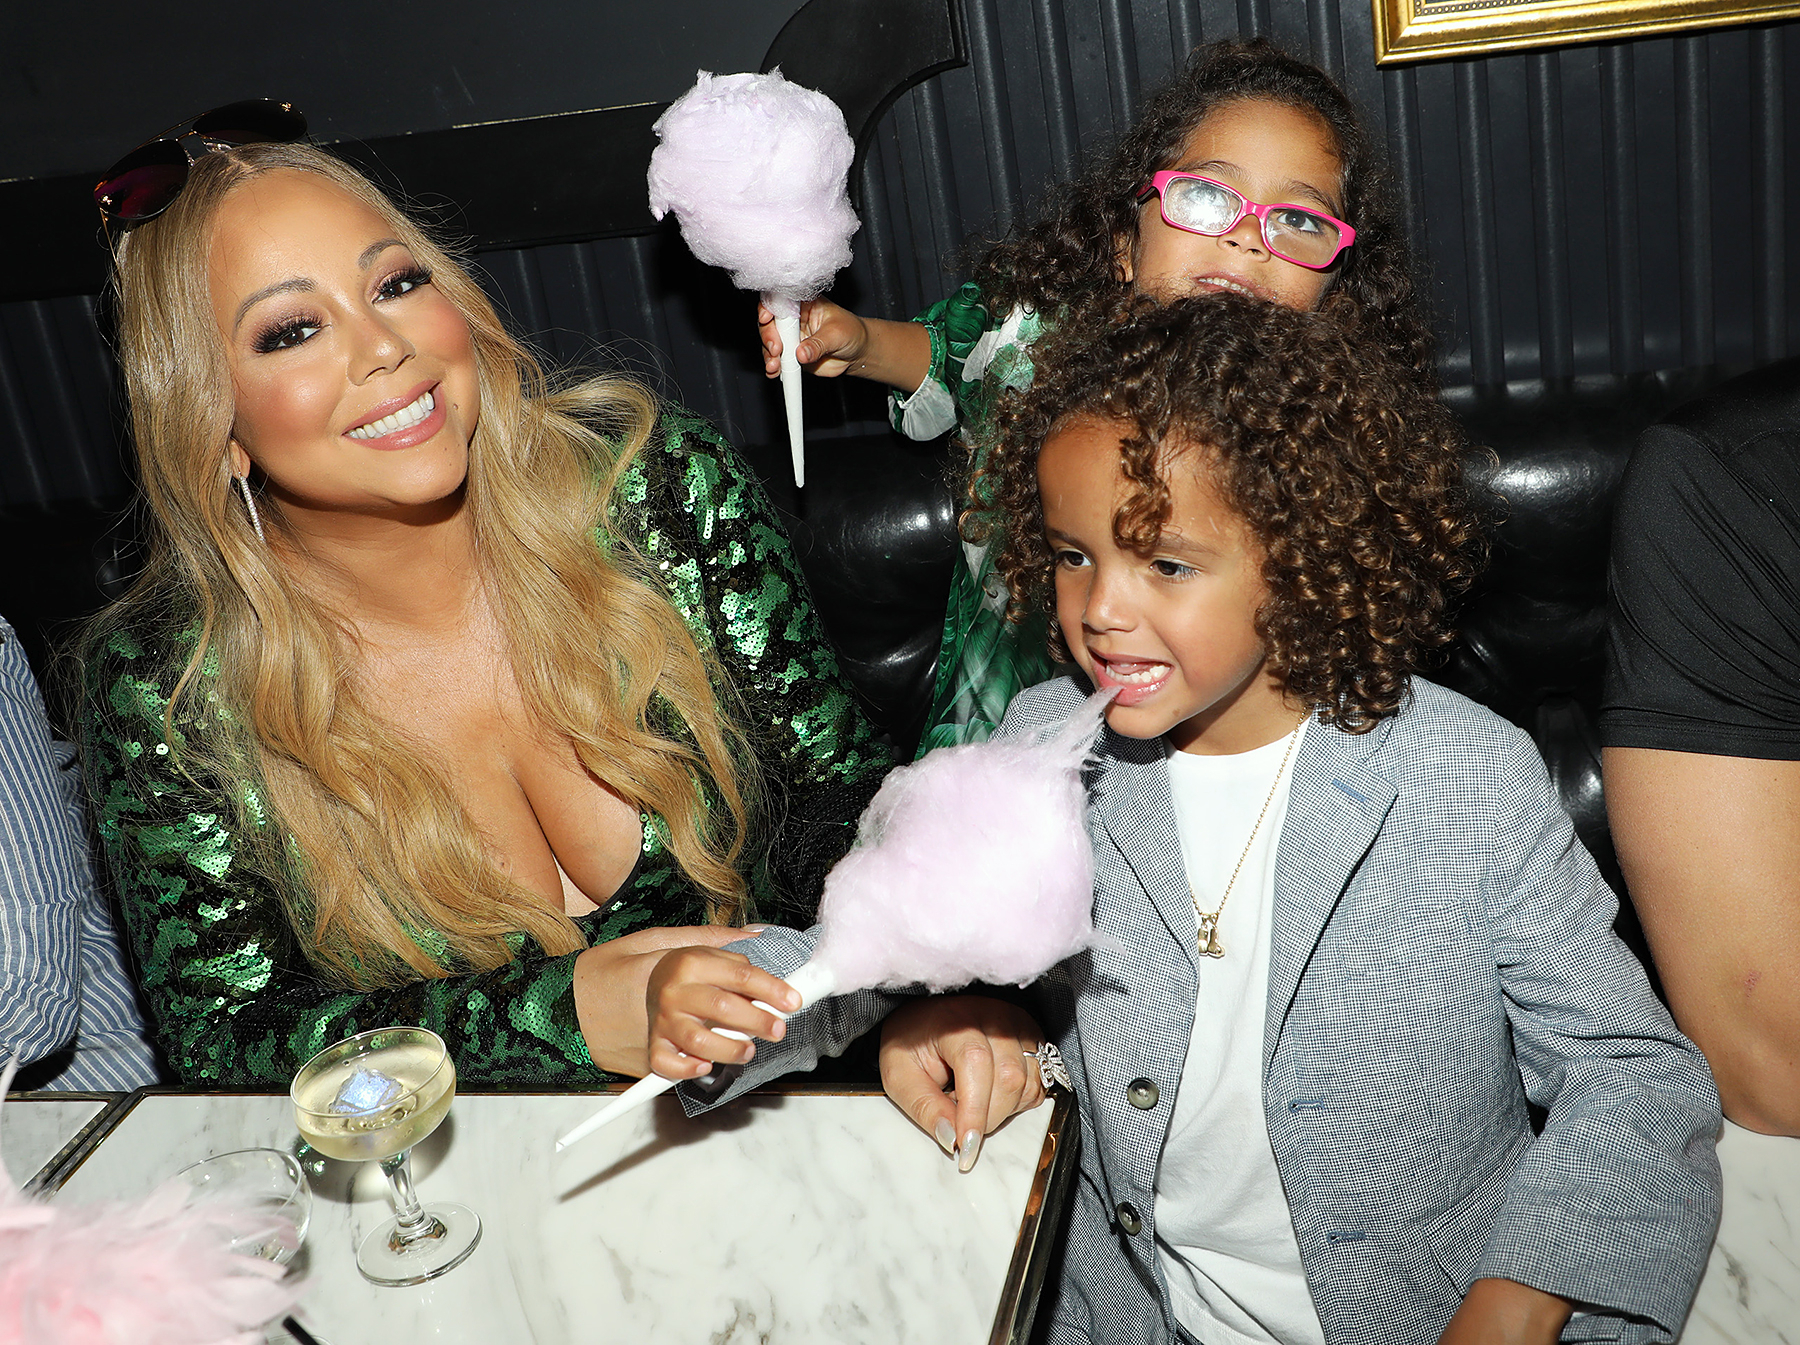 Mariah Carey and her children Moroccan and Monroe